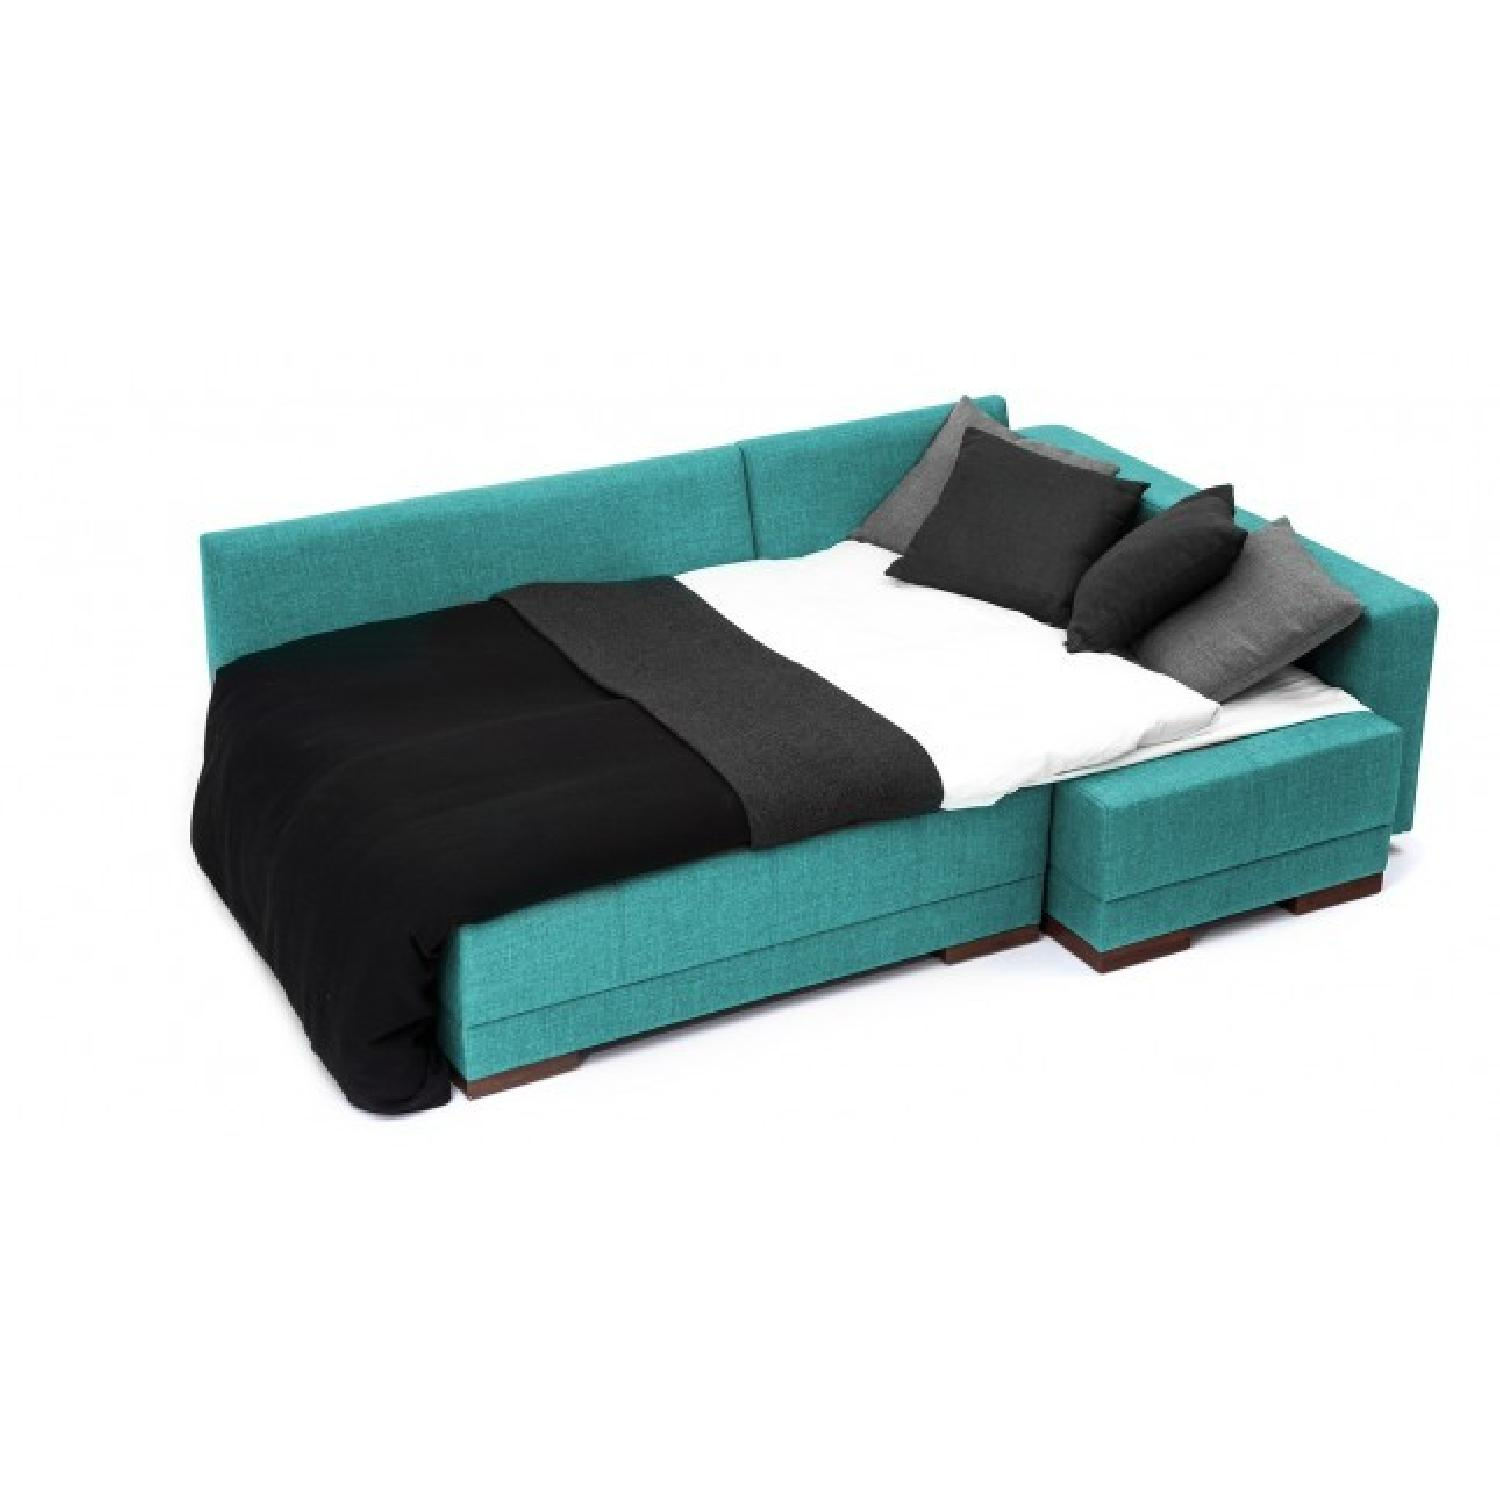 The Smart Sofa Right Side Corner Convertible Sofa in Turquoise - image-2